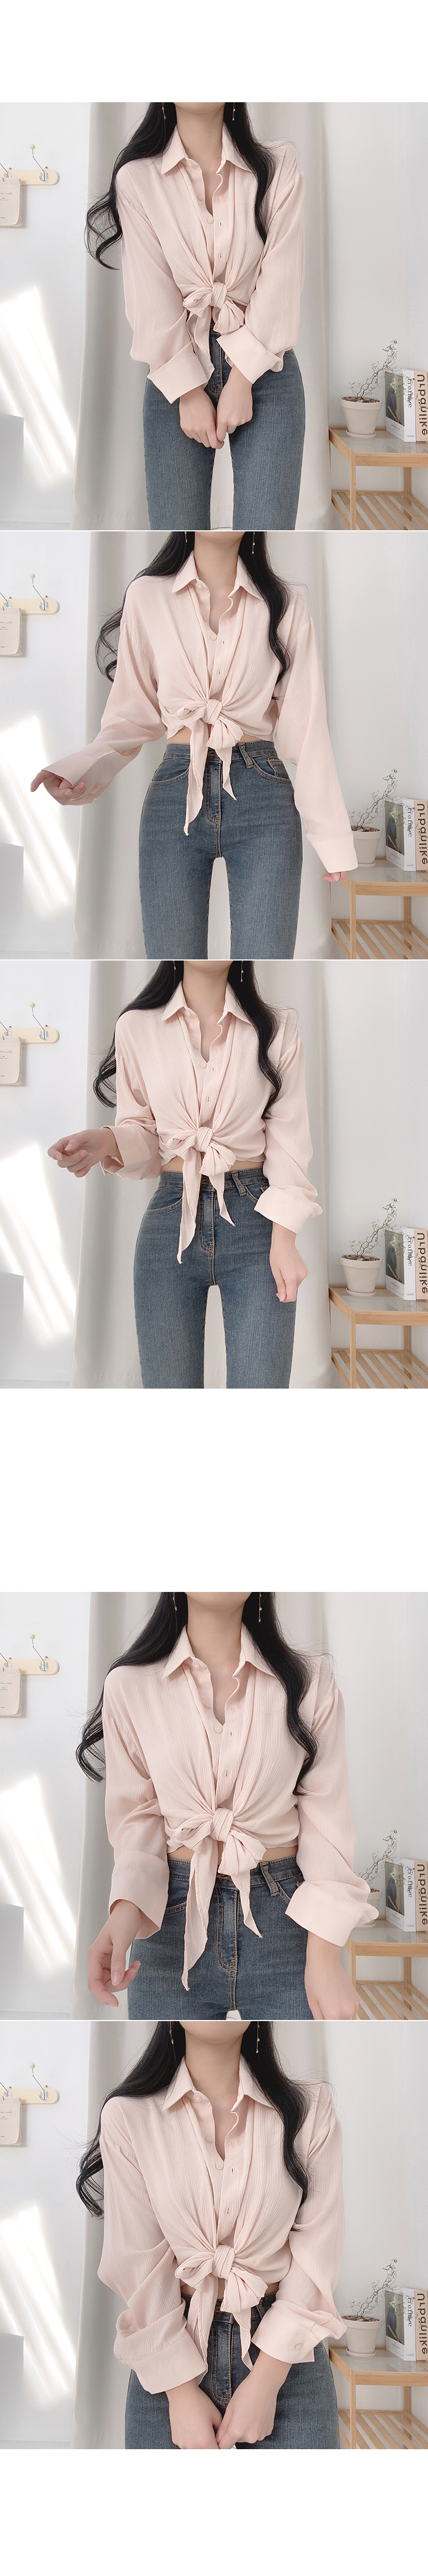 Pediatric knotted blouse